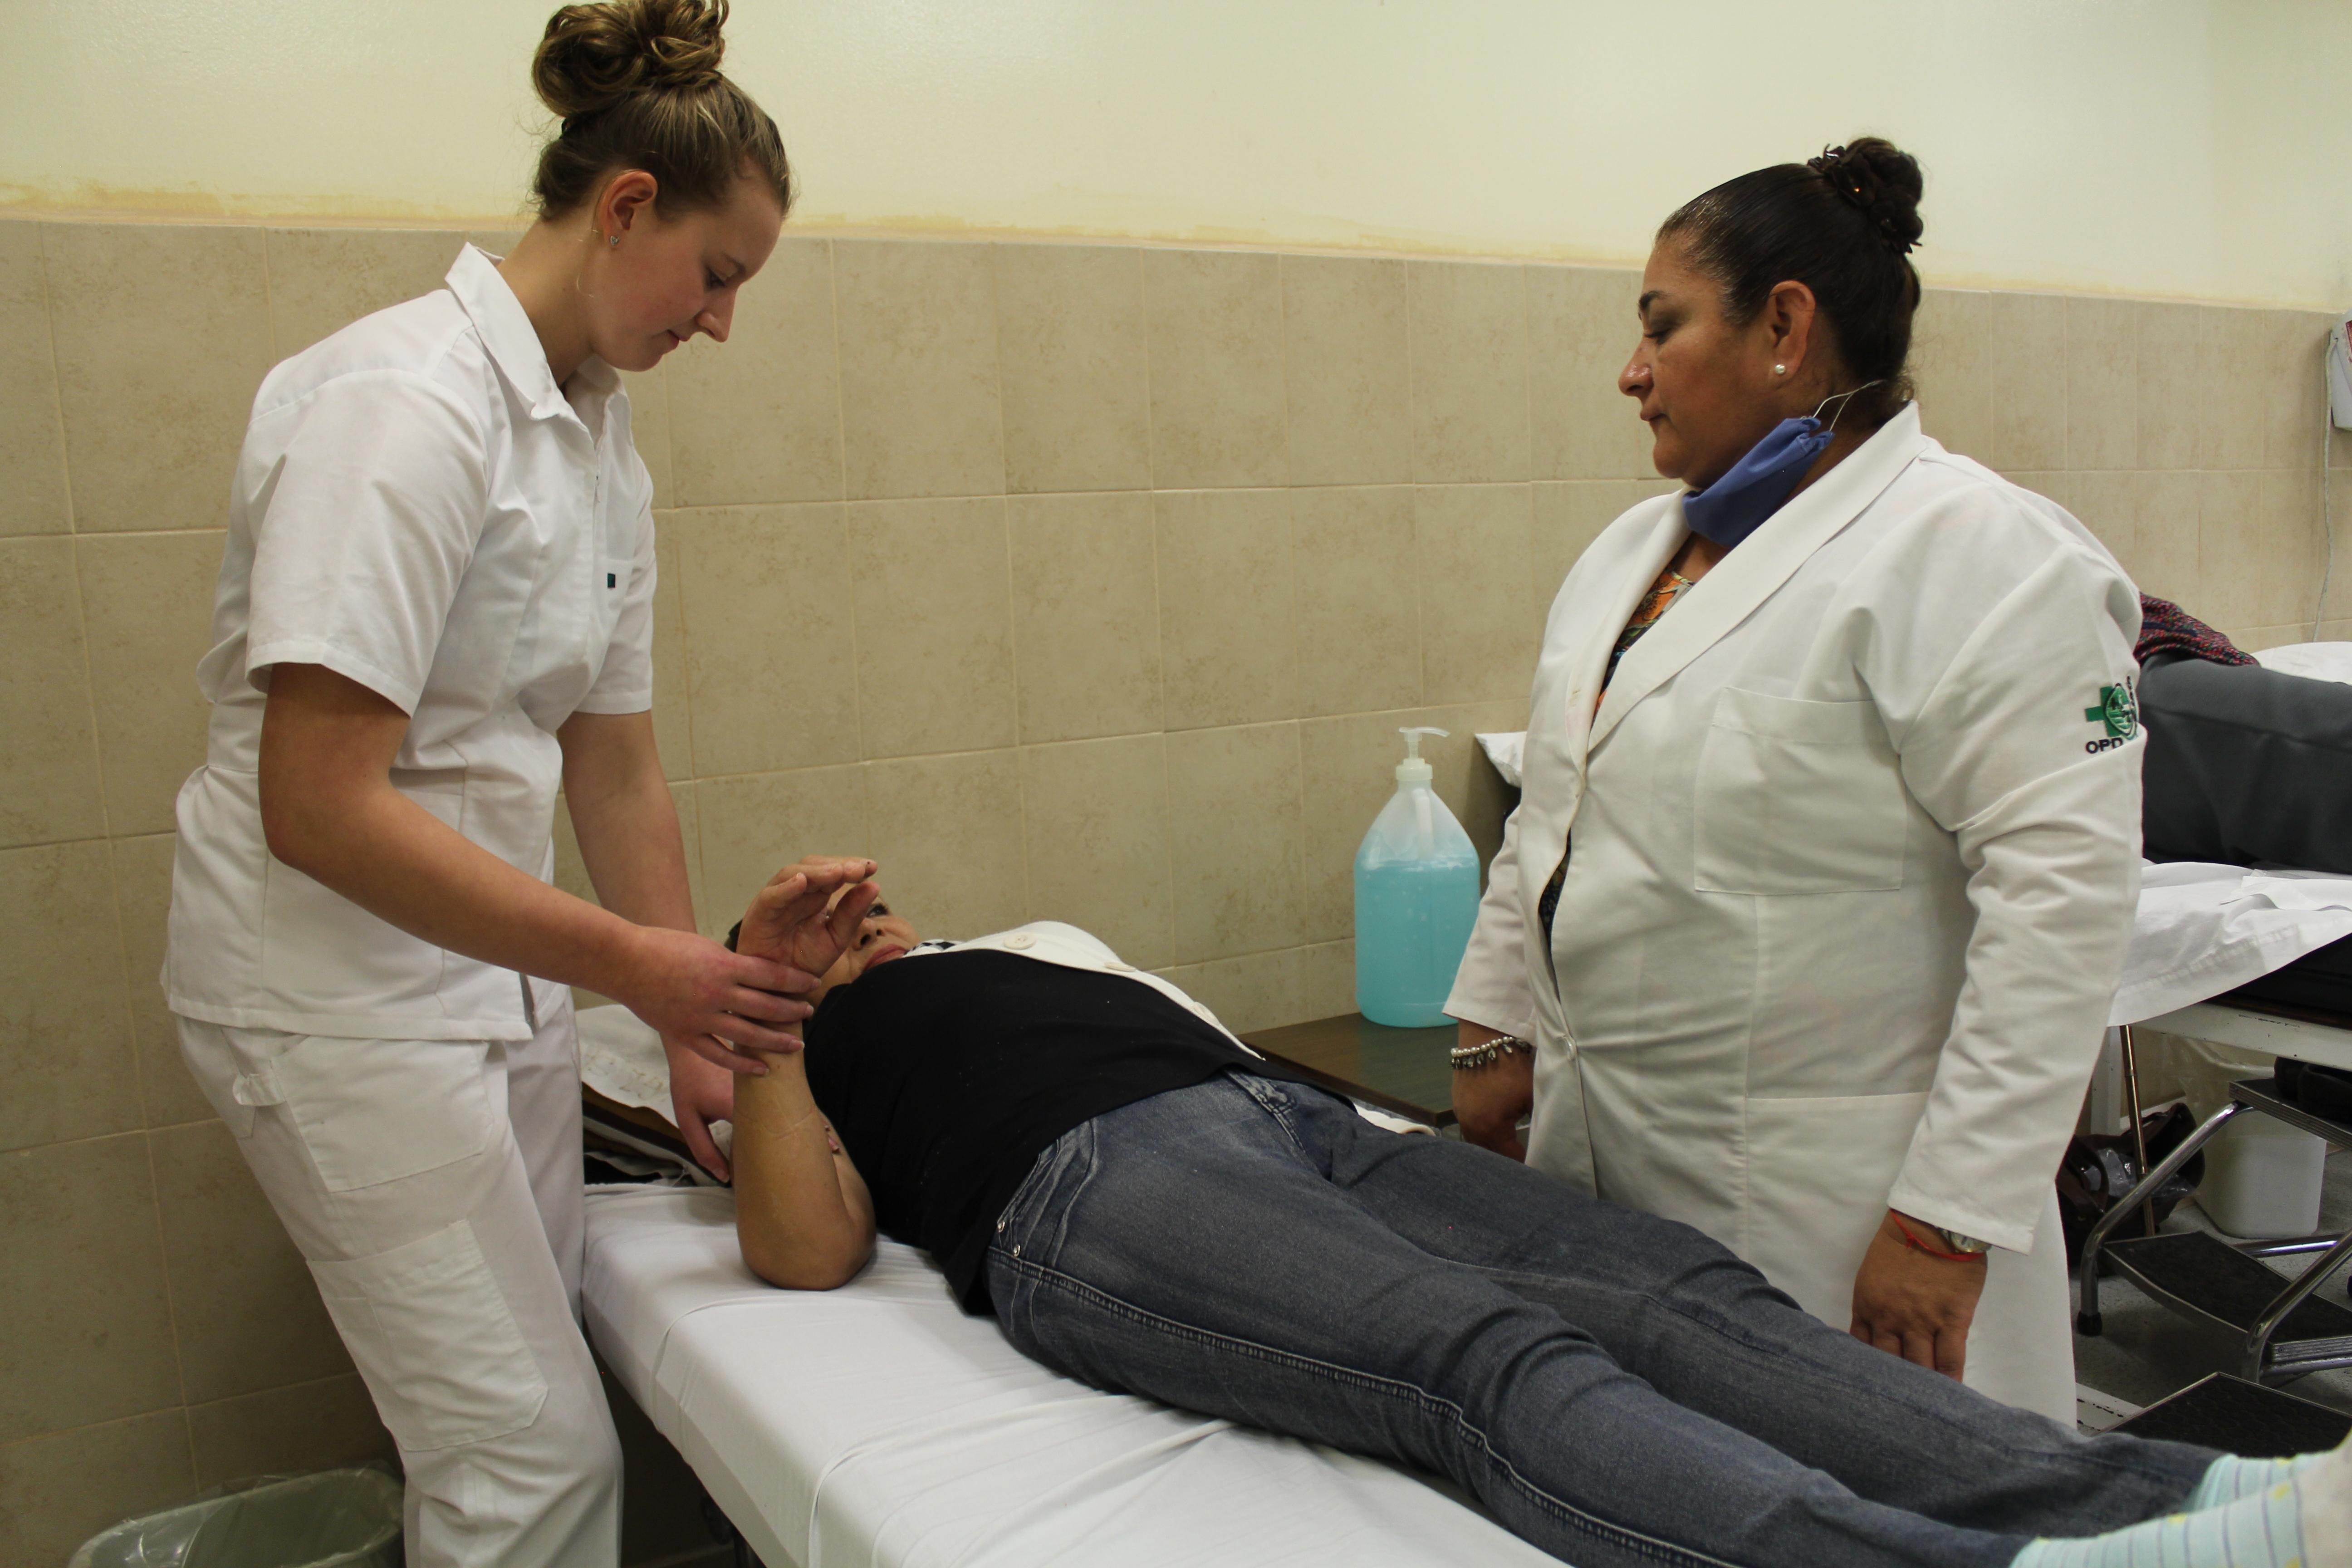 A female intern from Projects Abroad is pictured assisting a local doctor treating a patient whilst on her physiotherapy internship in Mexico.